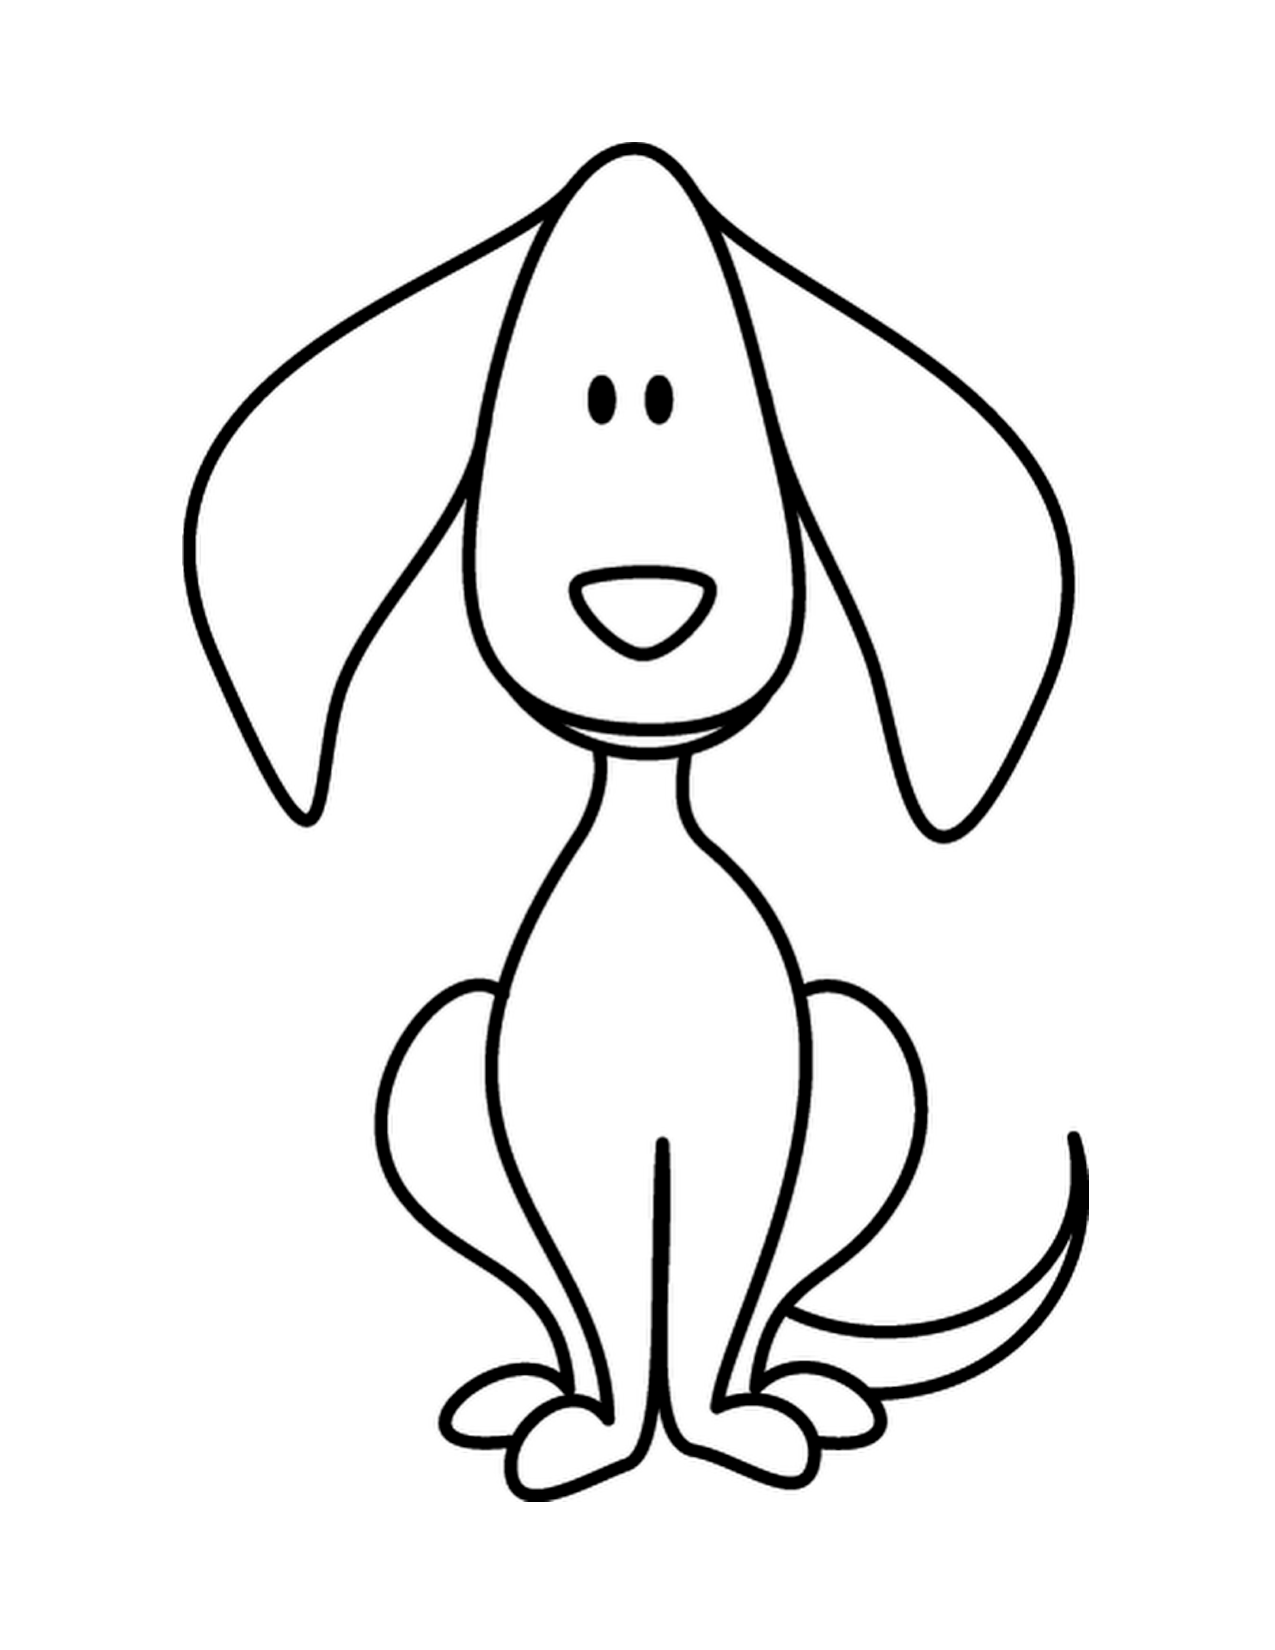 Line Art Drawing Easy : Simple line drawings for kids clipart best